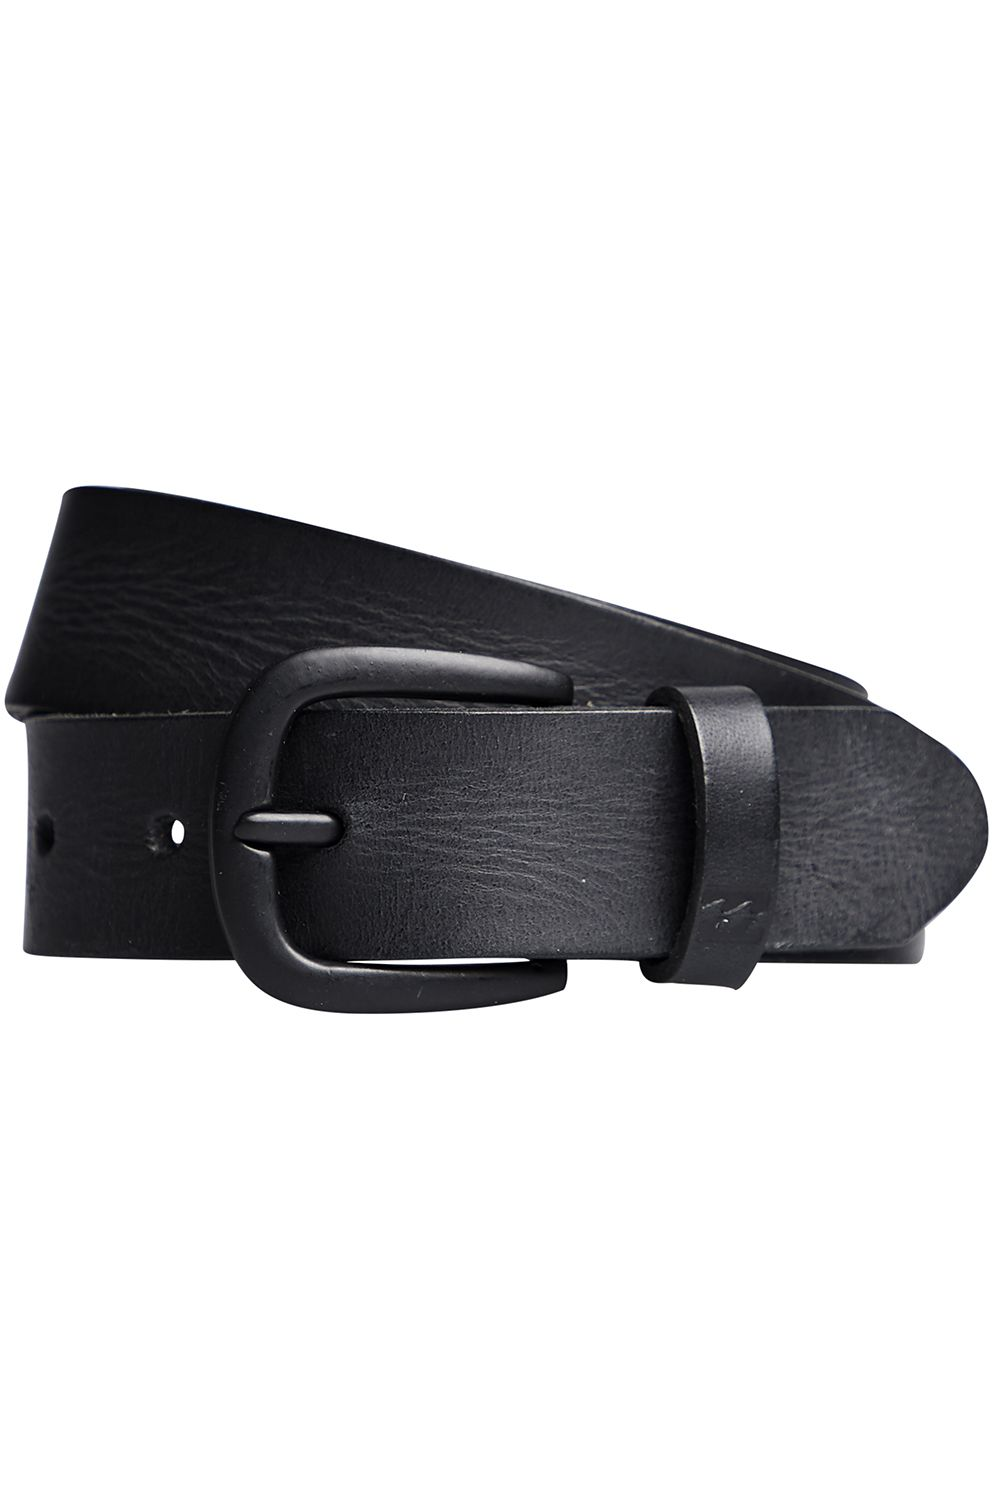 Billabong Leather Belt ALL DAY LEATHER Black